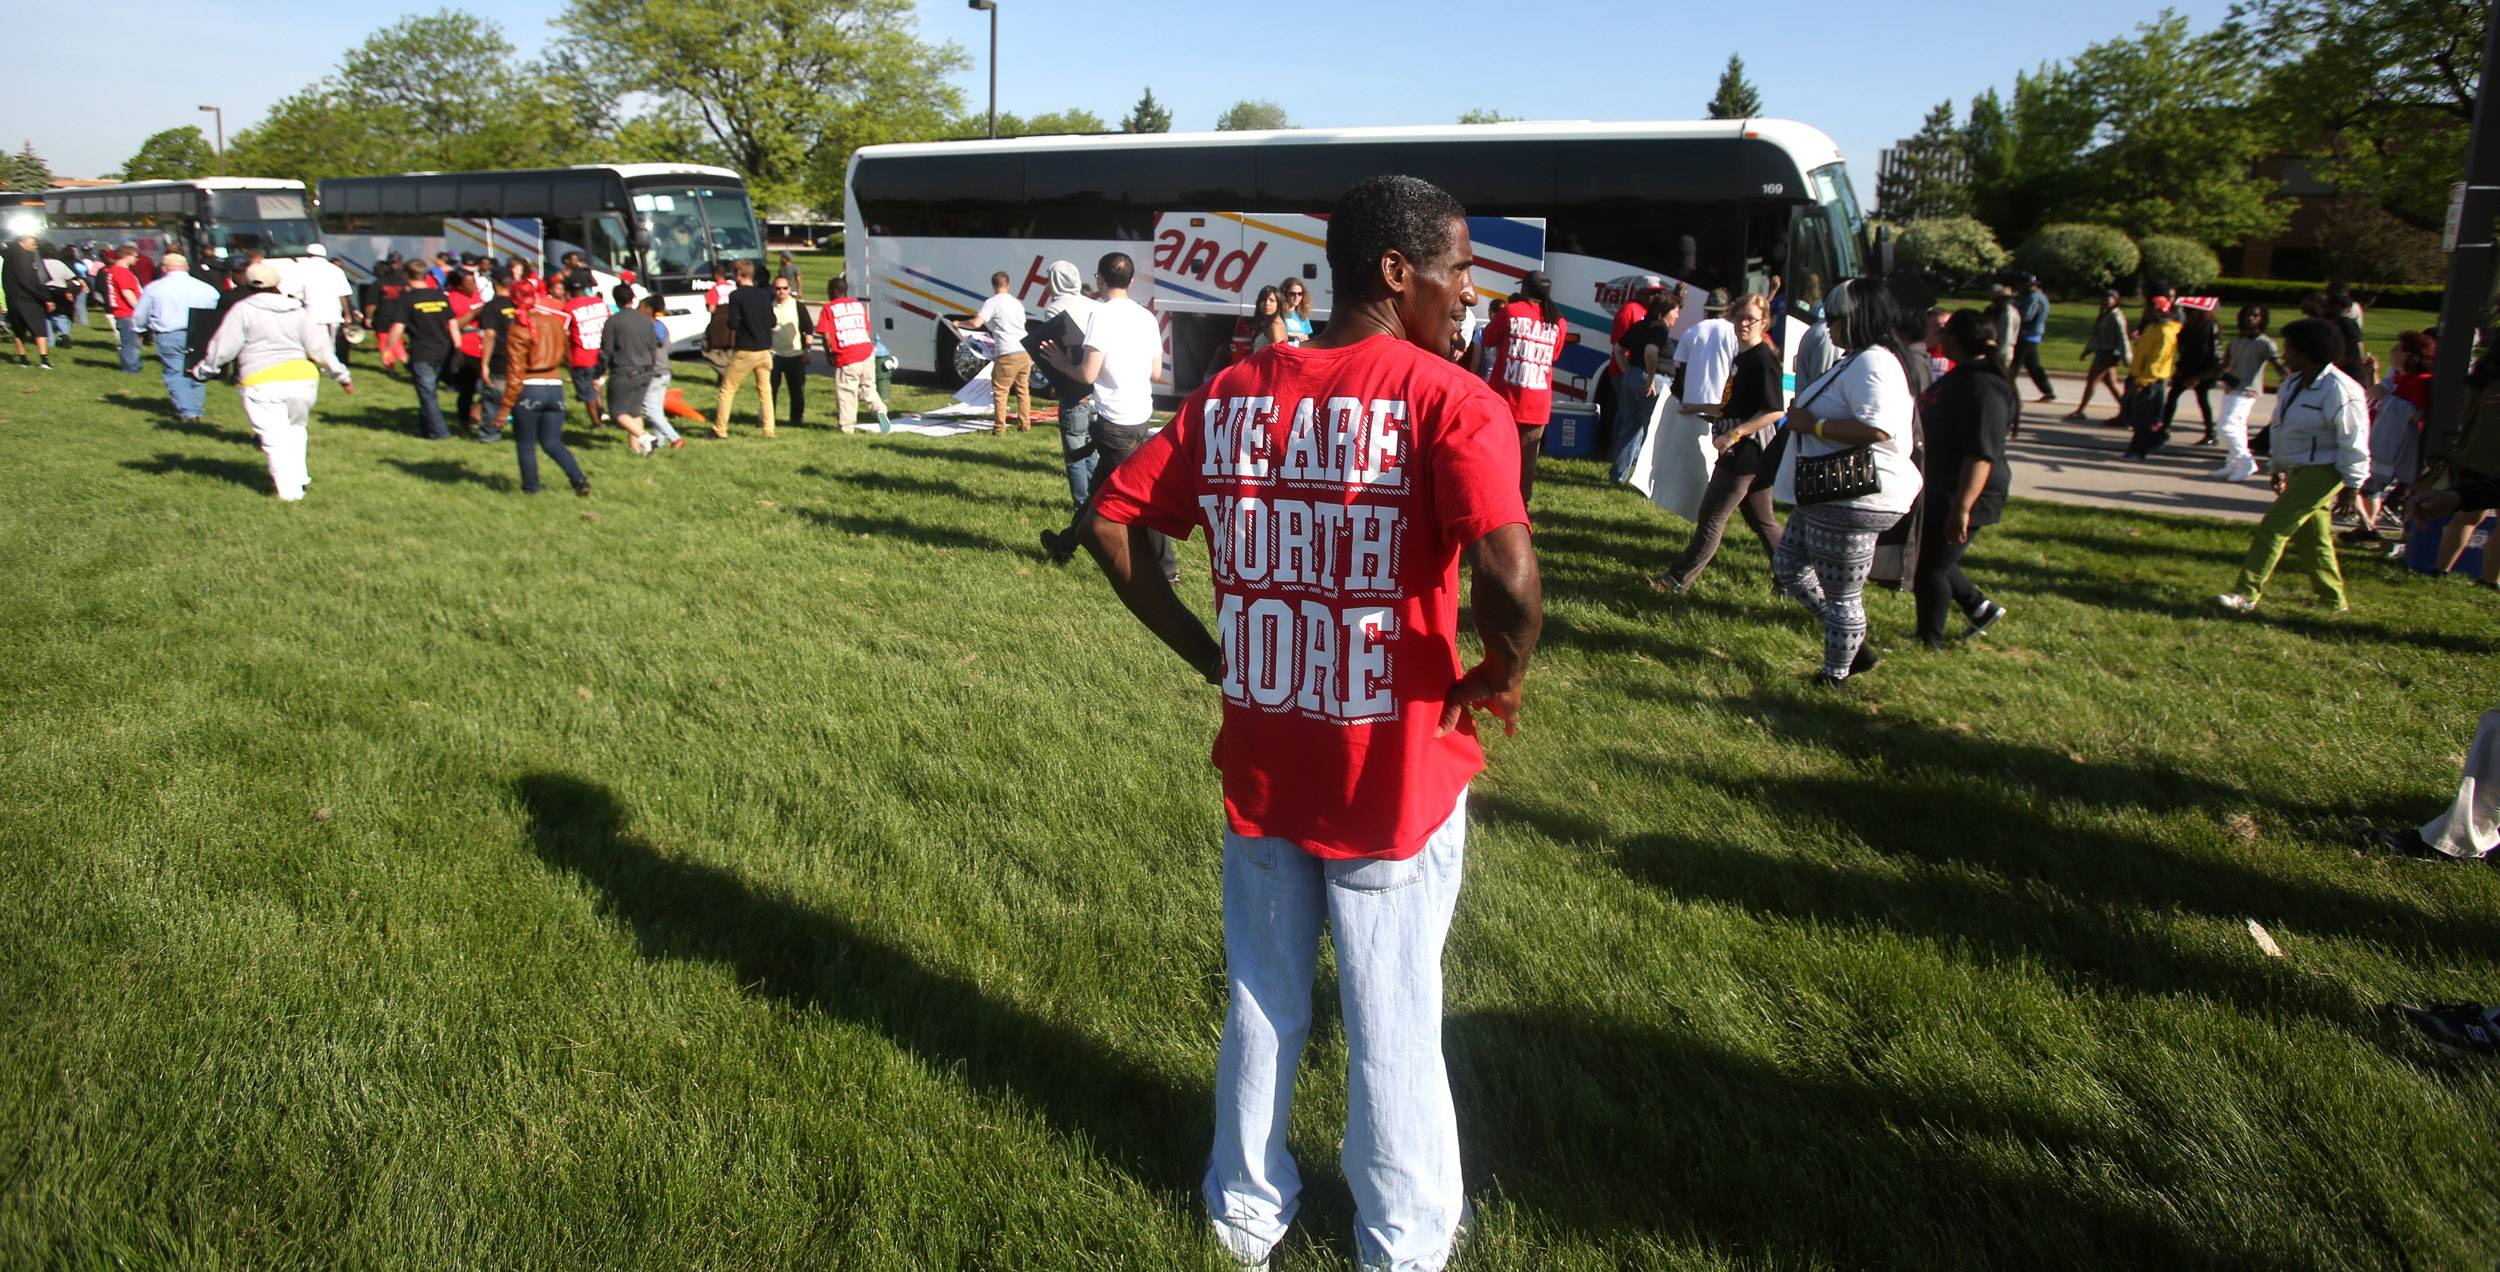 Protesters head back to their buses following a demonstration for higher wages outside McDonald's headquarters during an annual shareholder meeting in Oak Brook.